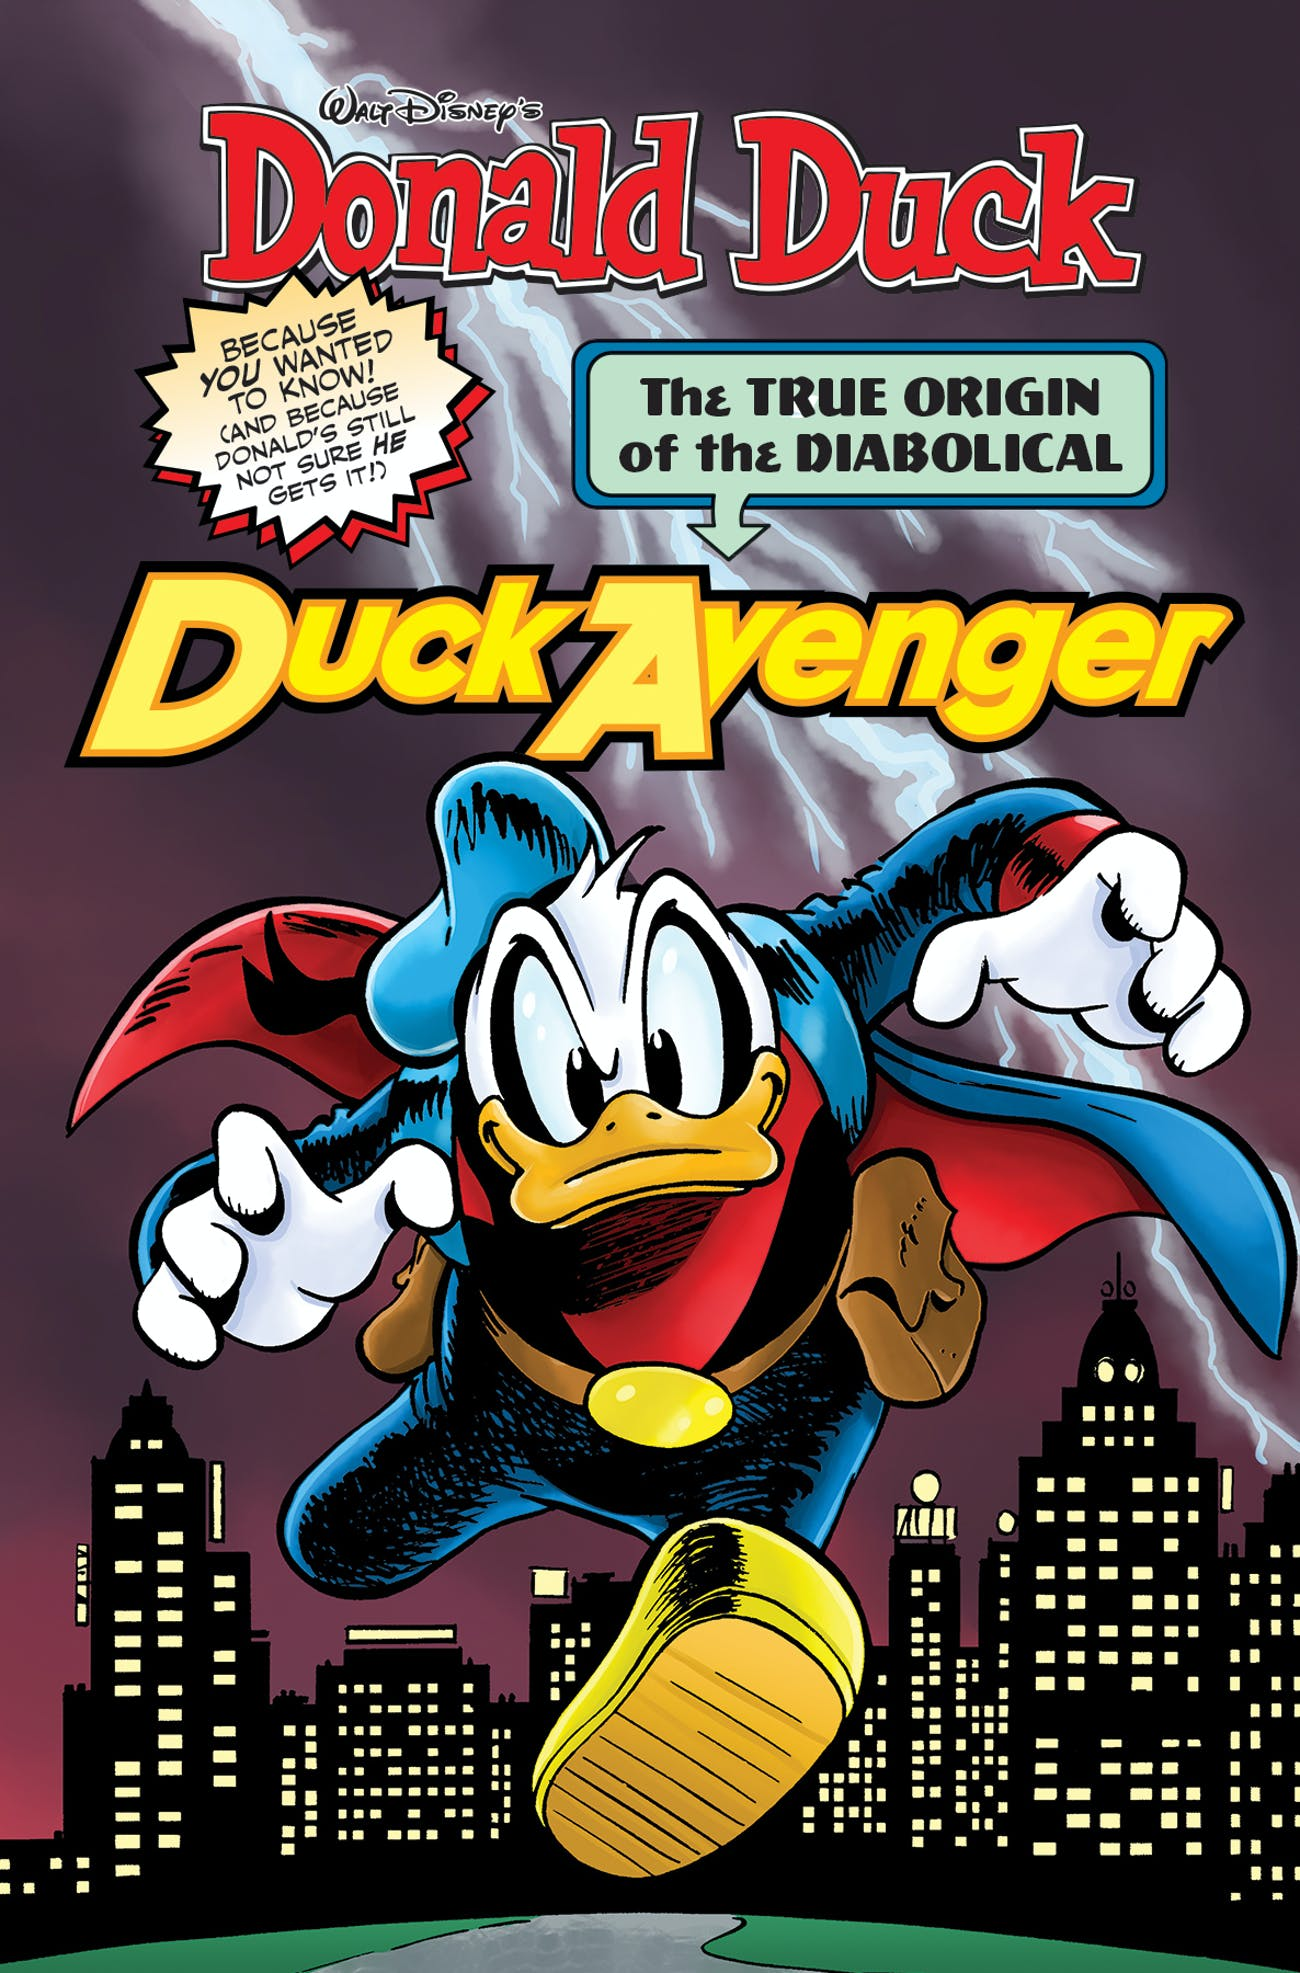 A History of Duck Avenger, the Donald Duck That Is Huge in